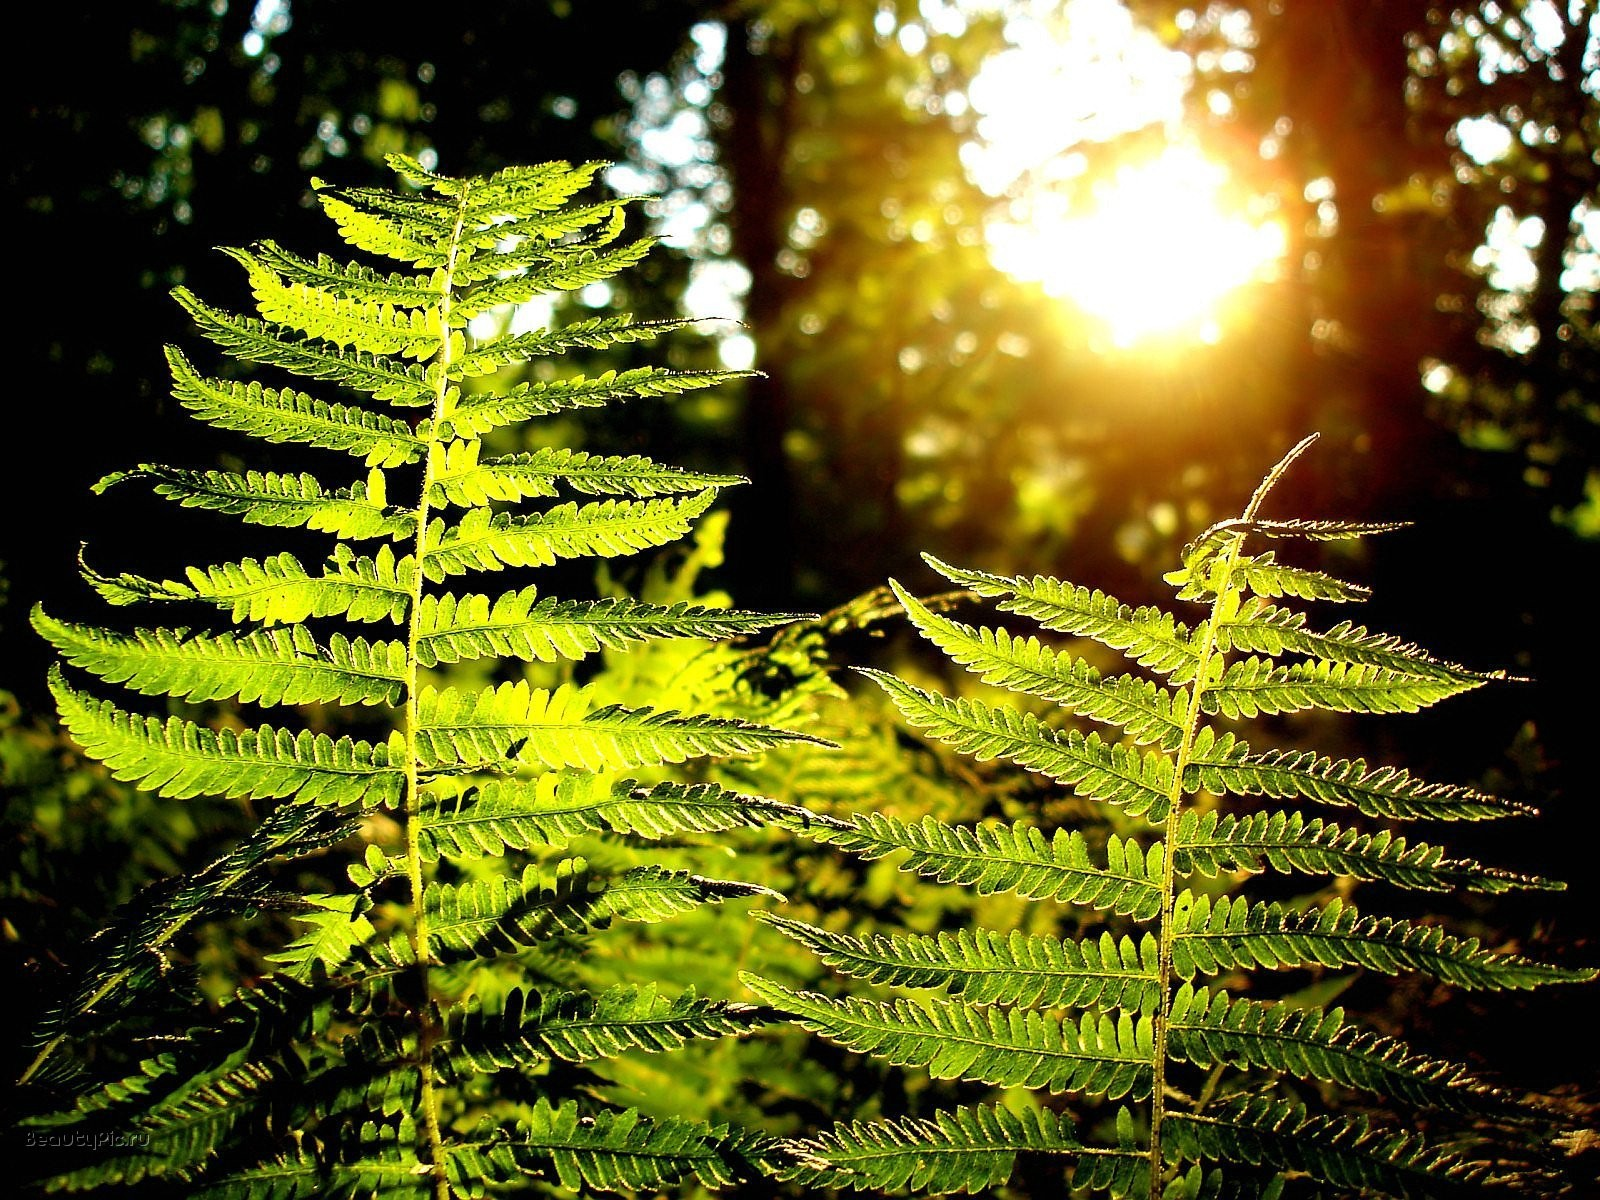 Plants sunlight Ferns blurred HD Wallpaper